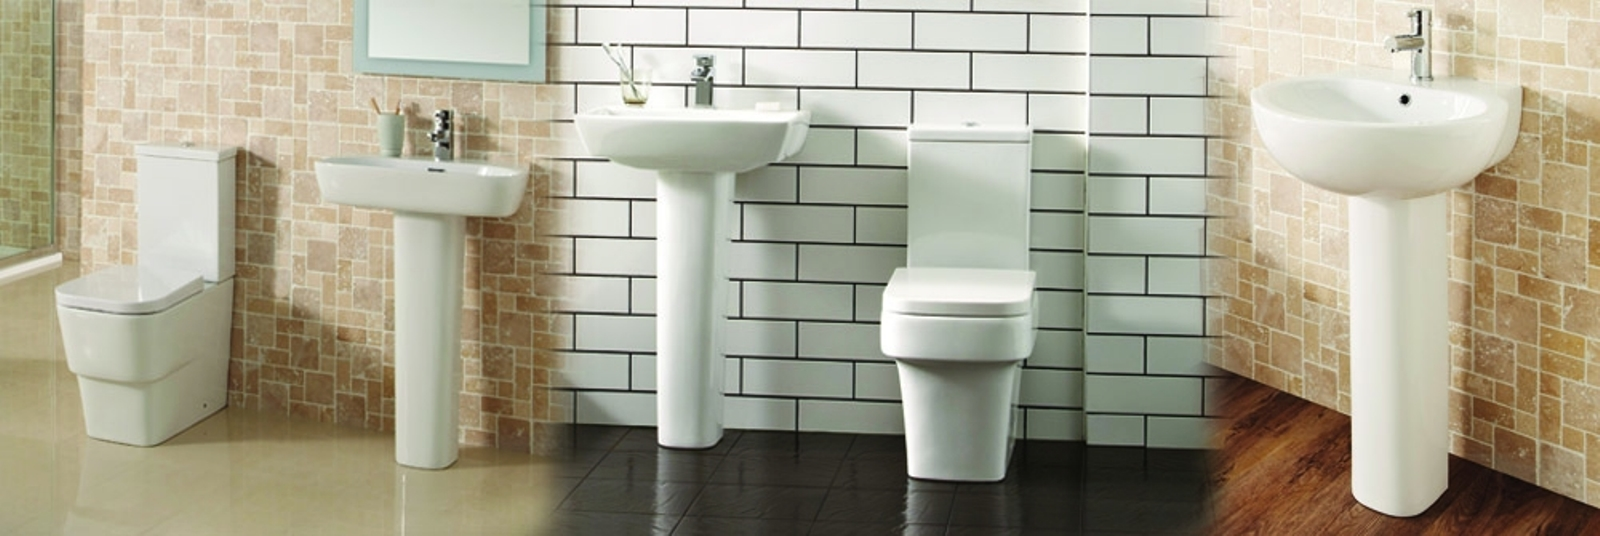 Jaquar bathroom fittings pune - Offers Designer Sanitary Wares And Ceramic Products For Your Bathroom